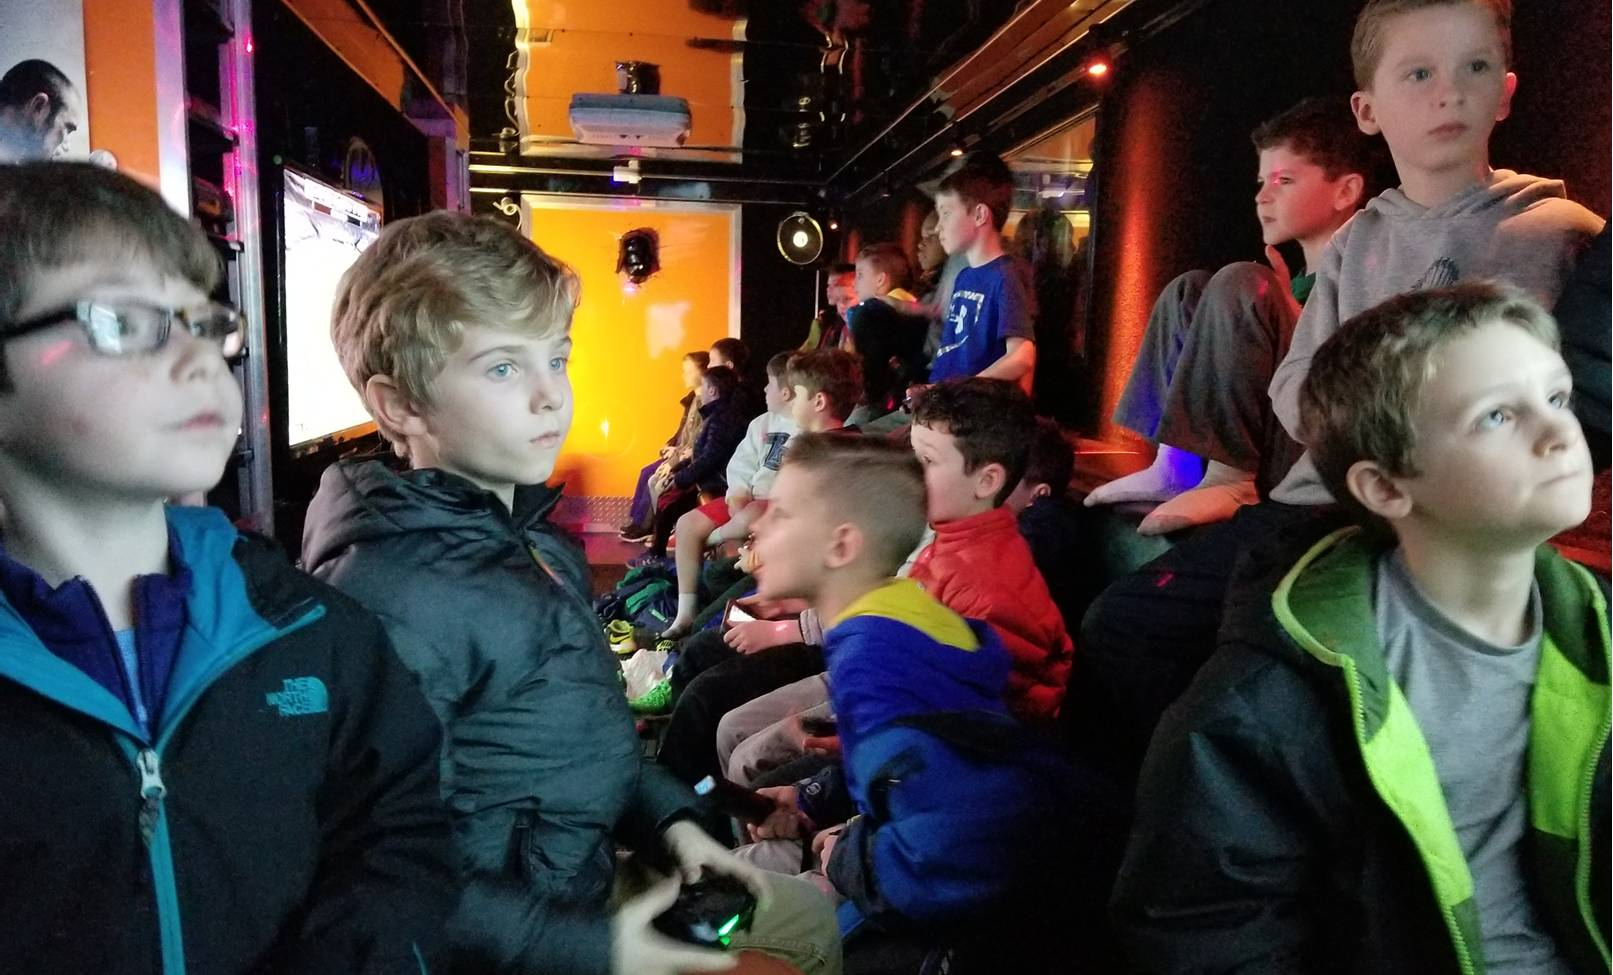 Video game truck party in Chicago